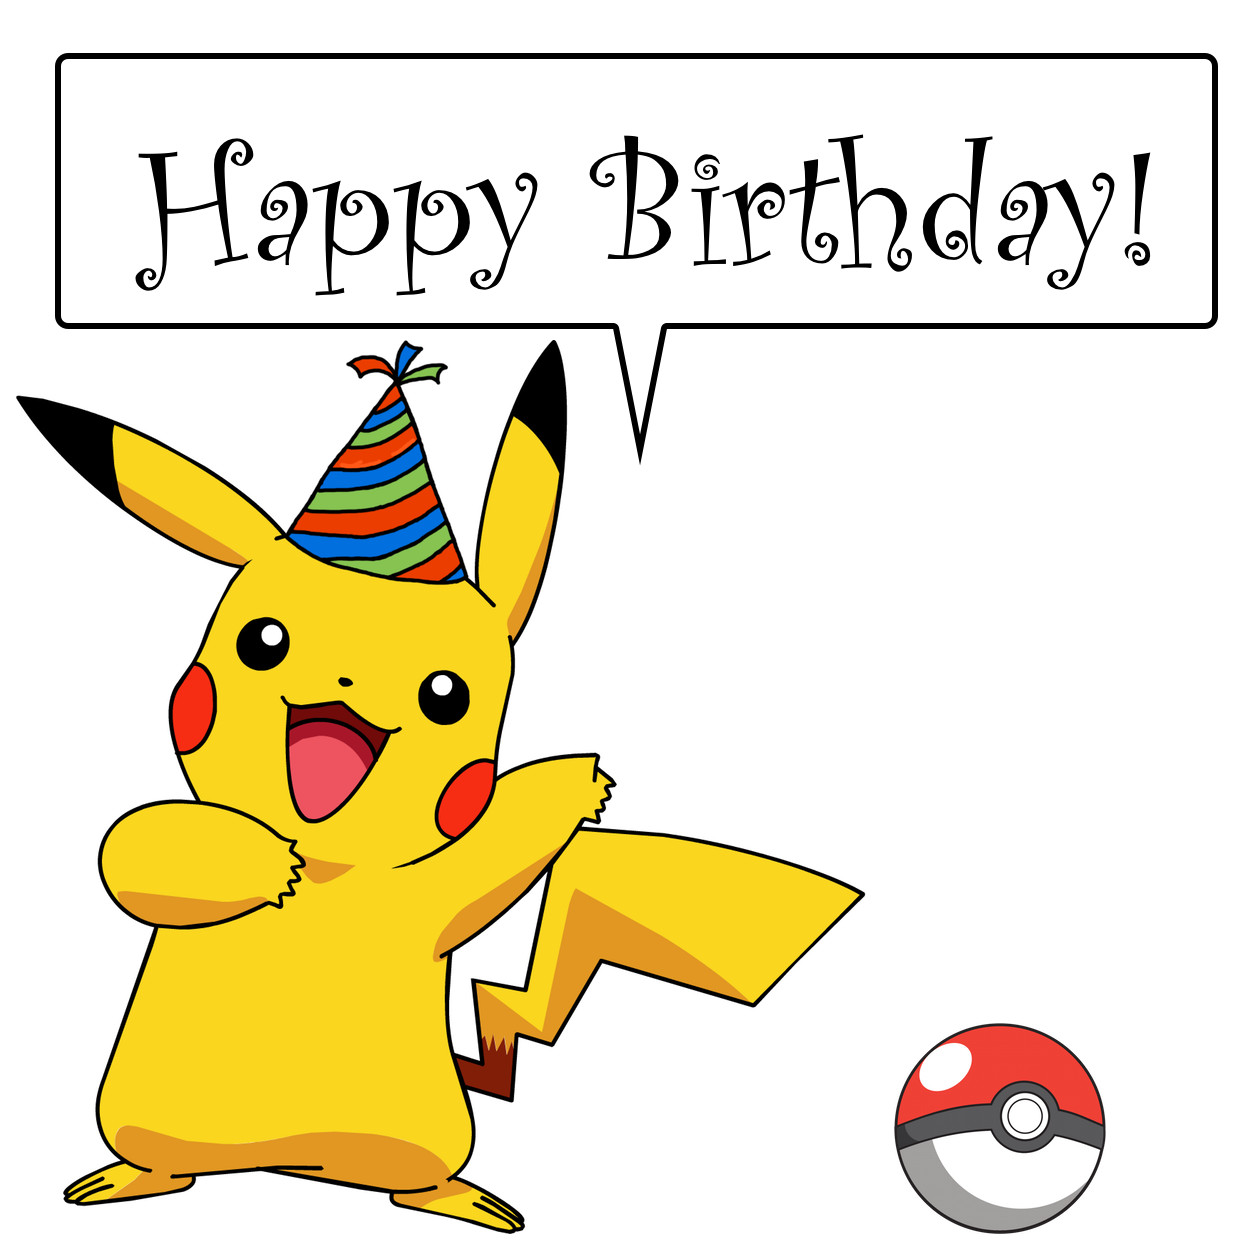 Best ideas about Pikachu Birthday Card . Save or Pin The Big 1 0 Now.